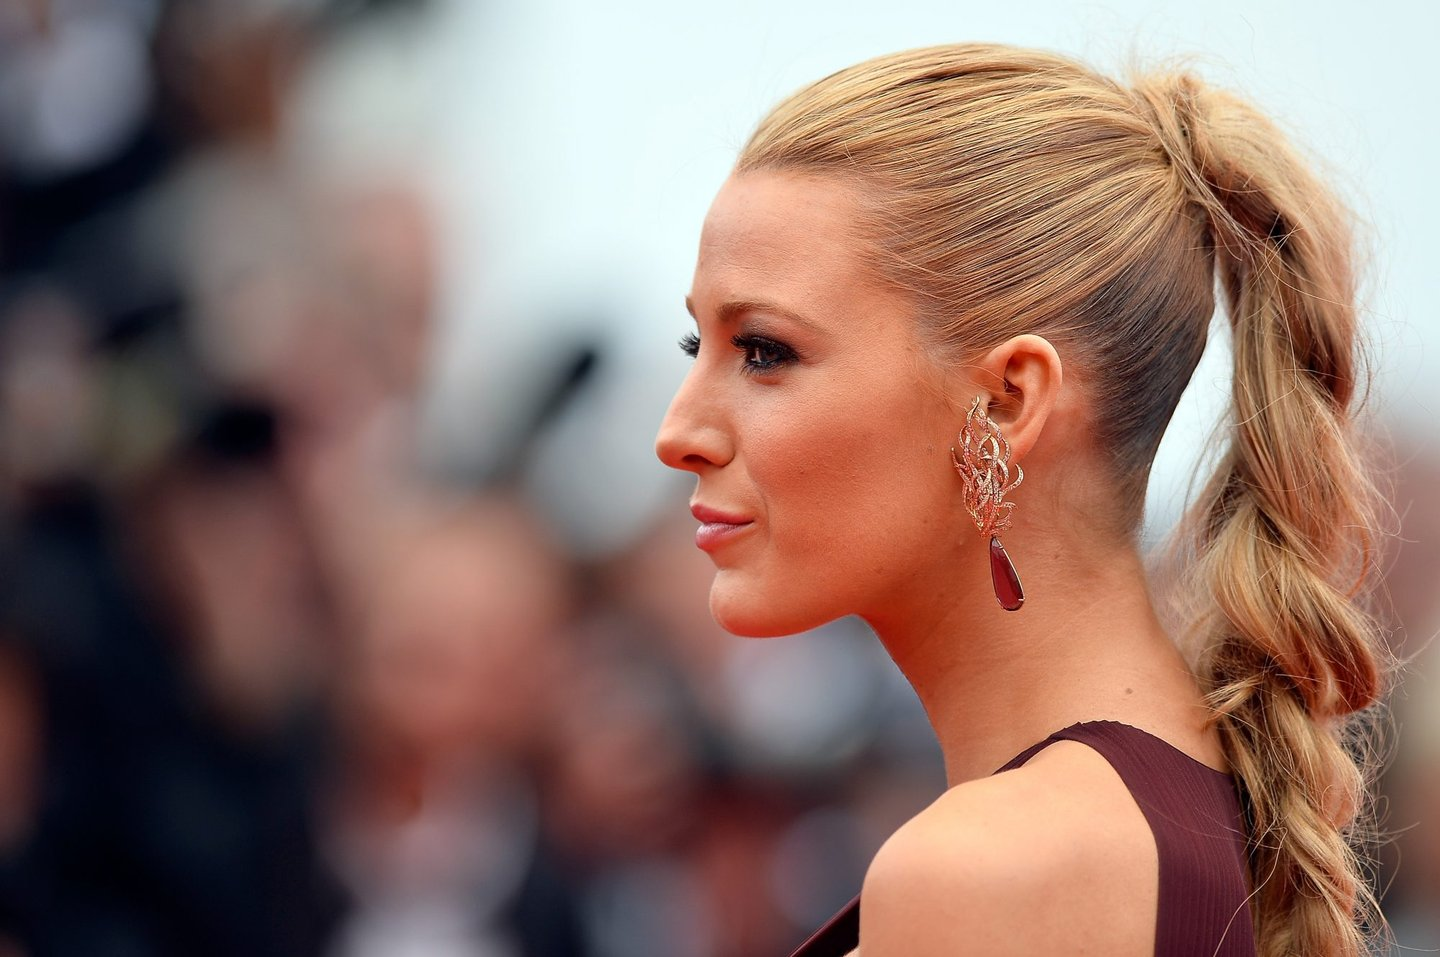 """CANNES, FRANCE - MAY 14: Blake Lively attends the Opening ceremony and the """"Grace of Monaco"""" Premiere during the 67th Annual Cannes Film Festival on May 14, 2014 in Cannes, France. (Photo by Pascal Le Segretain/Getty Images)"""